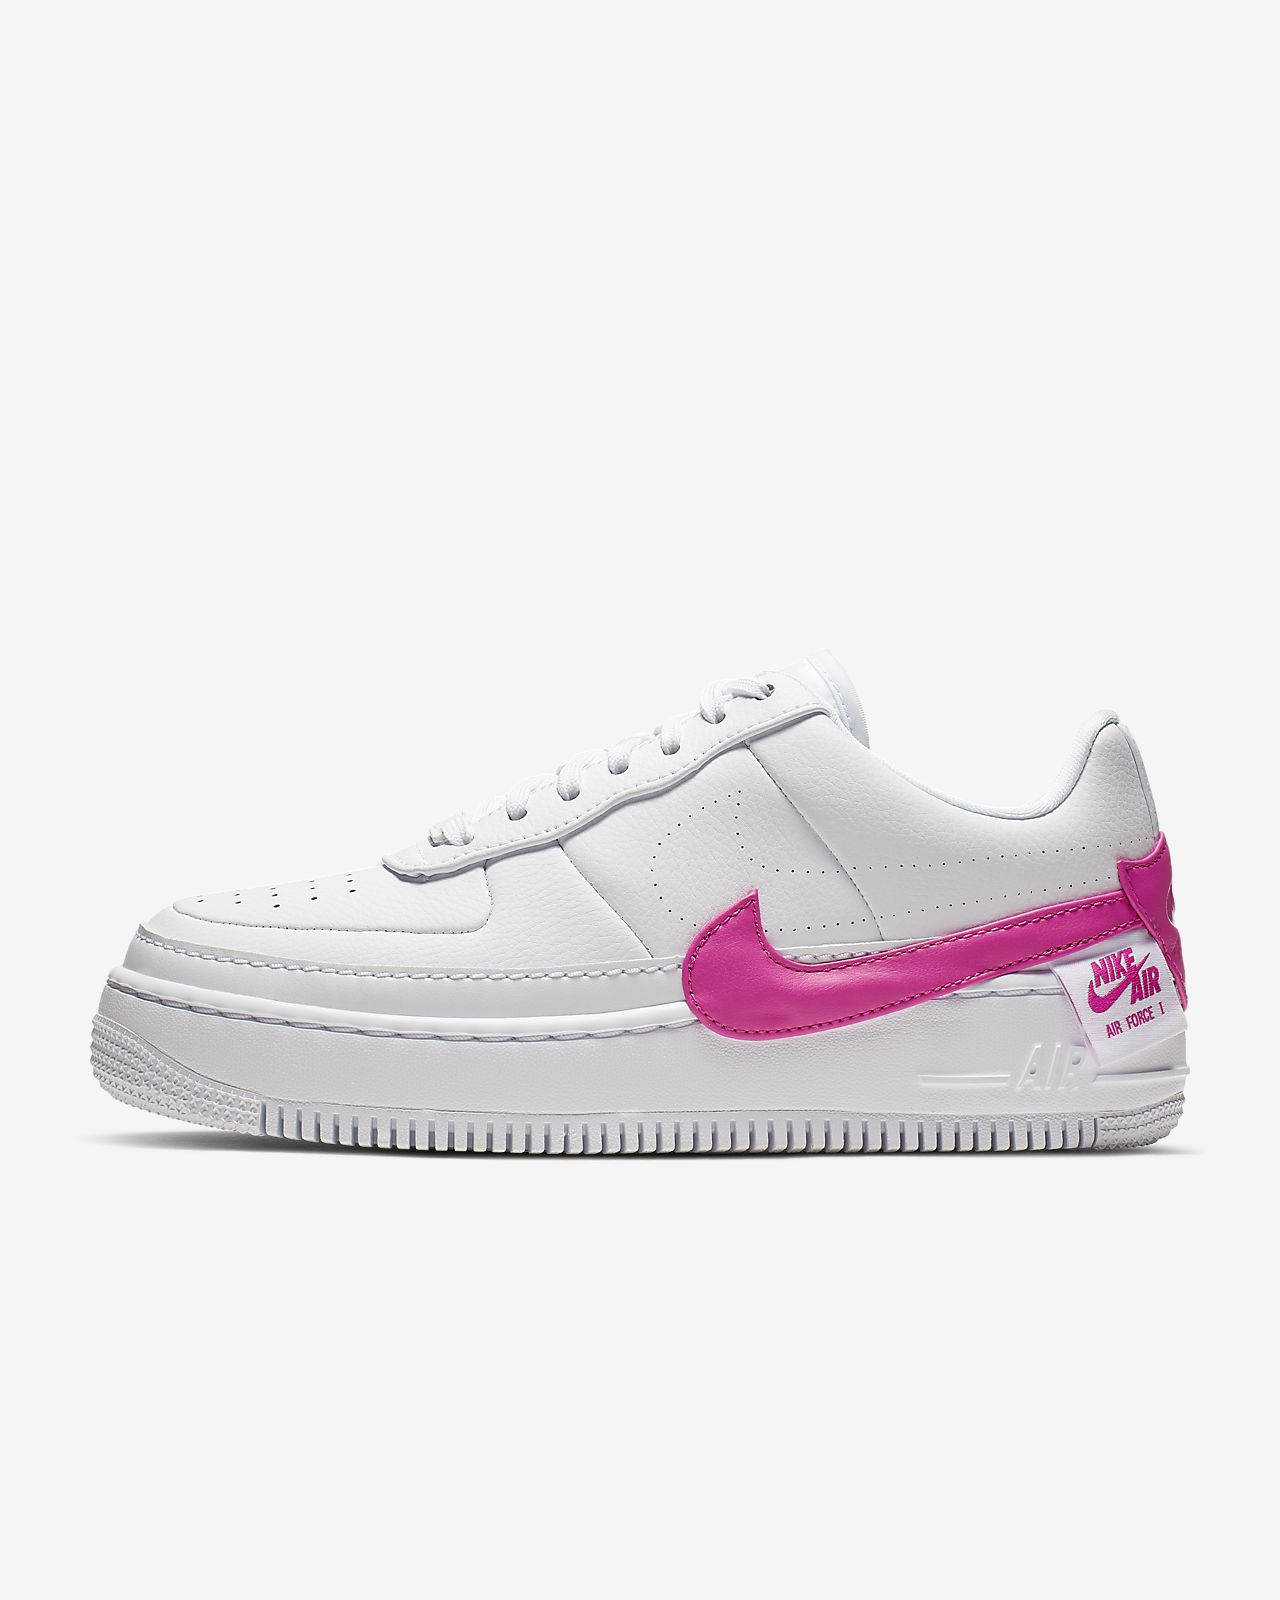 quality design da9a0 93997 Nike Air Force 1 Jester XX